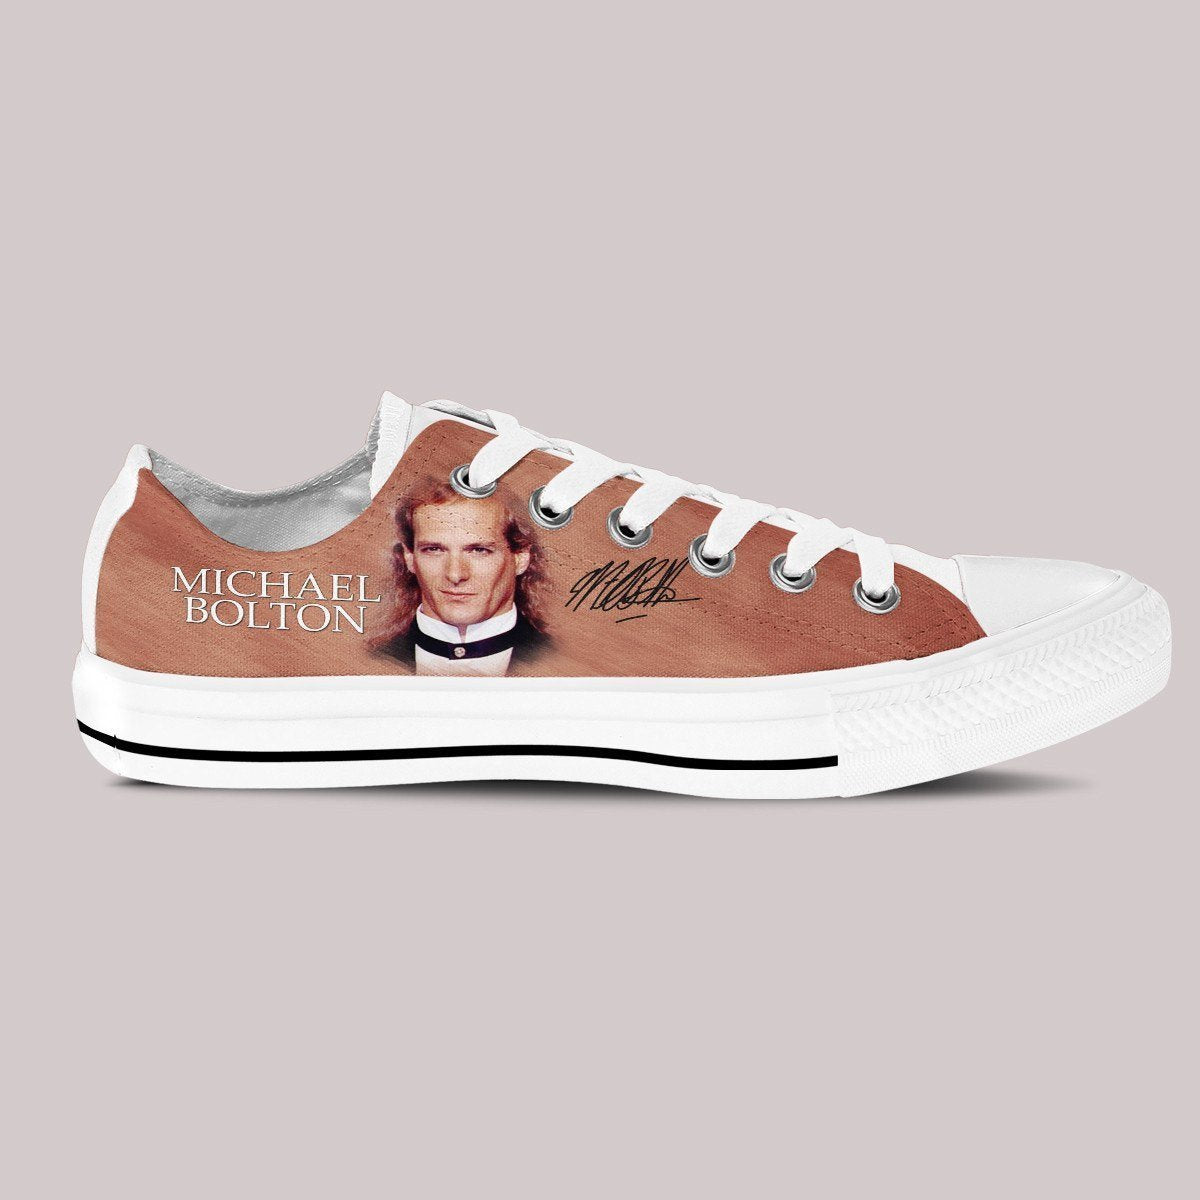 michael bolton mens low cut sneakers